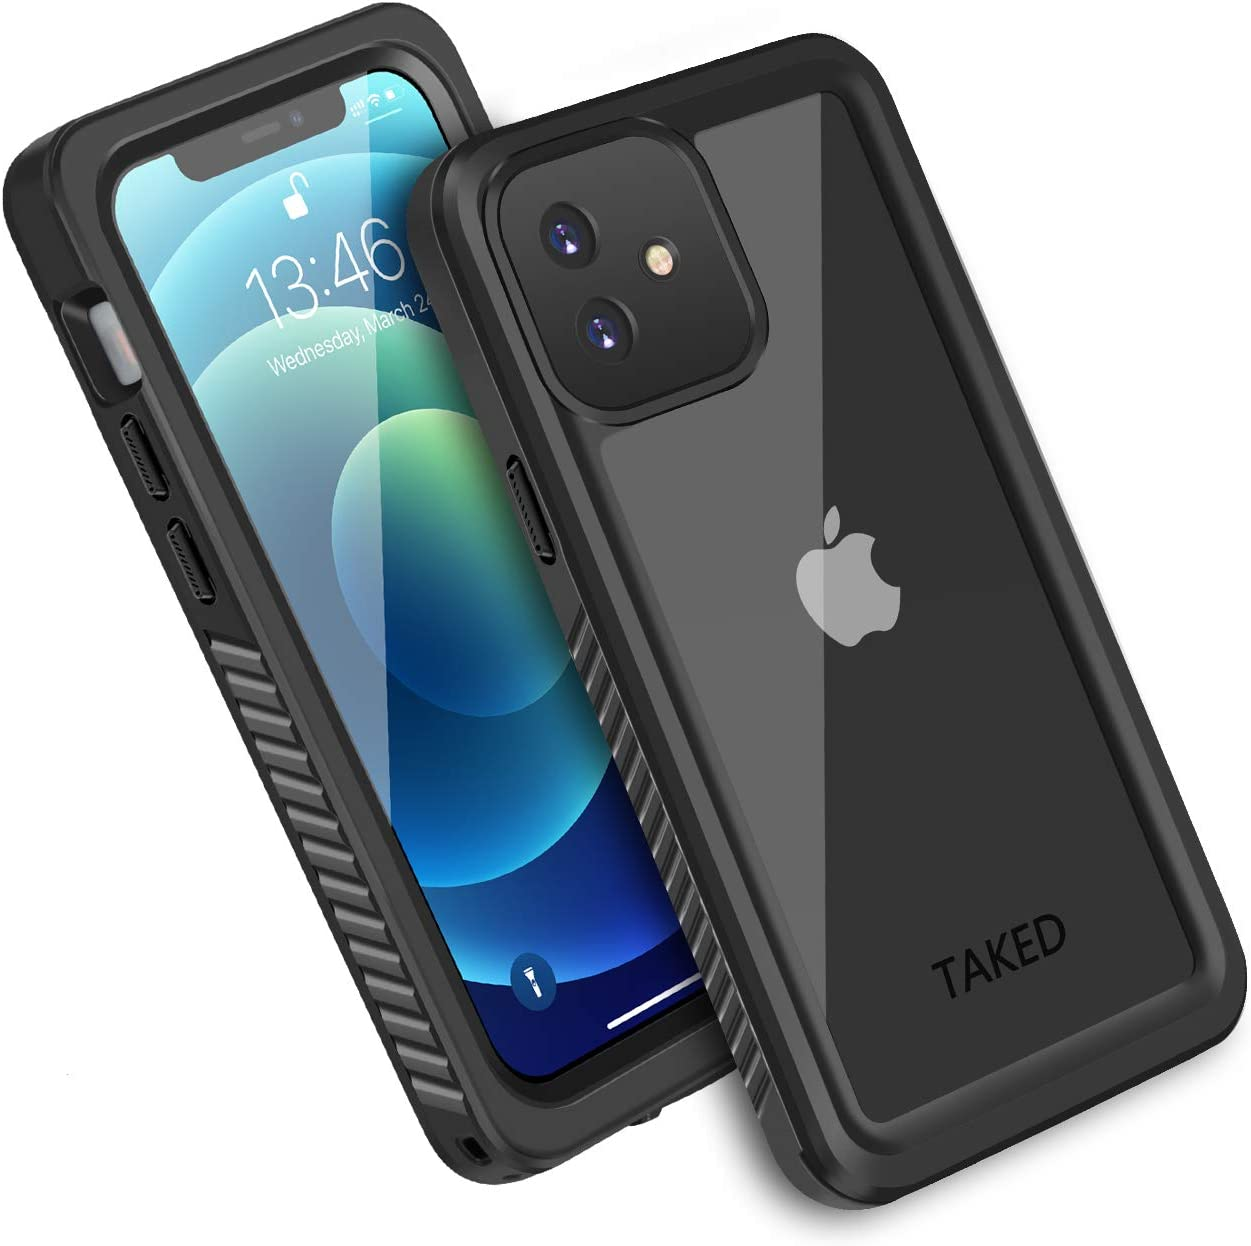 iPhone 12 Mini Waterproof Case, Shockproof Dustproof Snowproof Fully-Body Protective Cover with Screen Protector Clear Back New Designed for iPhone 12 Mini - Black (iPhone 12 Mini 5.4'')